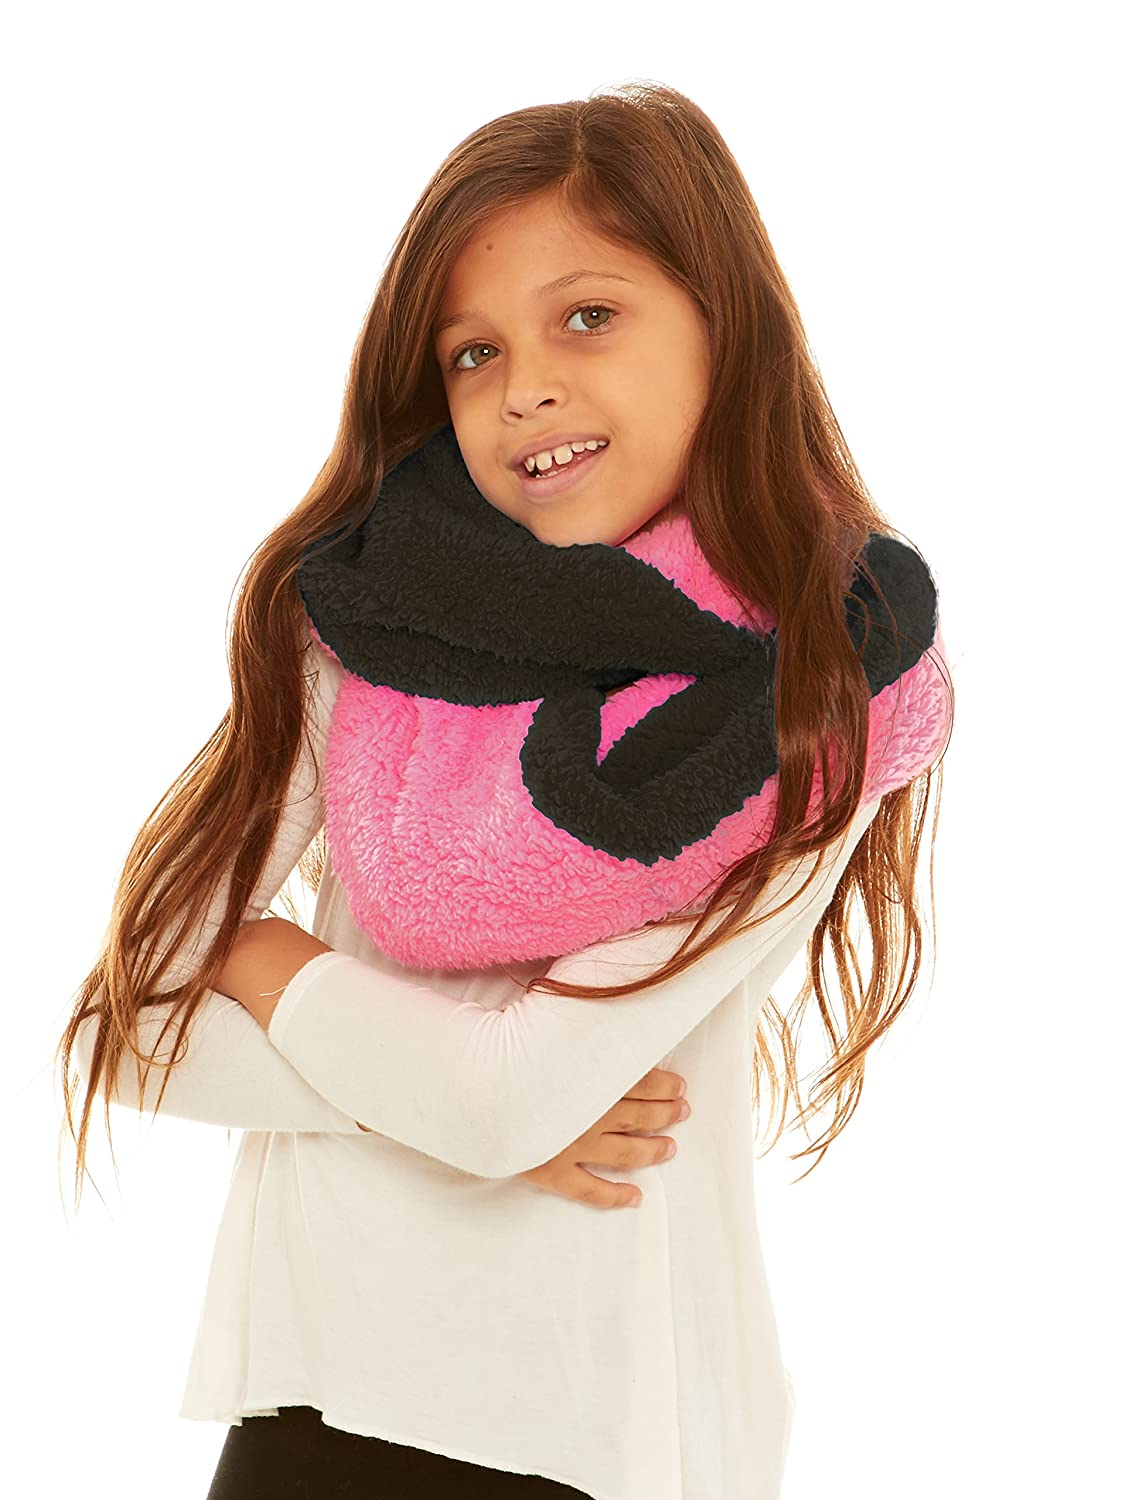 S.W.A.K Girls Loop Infinity Fashion Scarf B6B1552G-FB